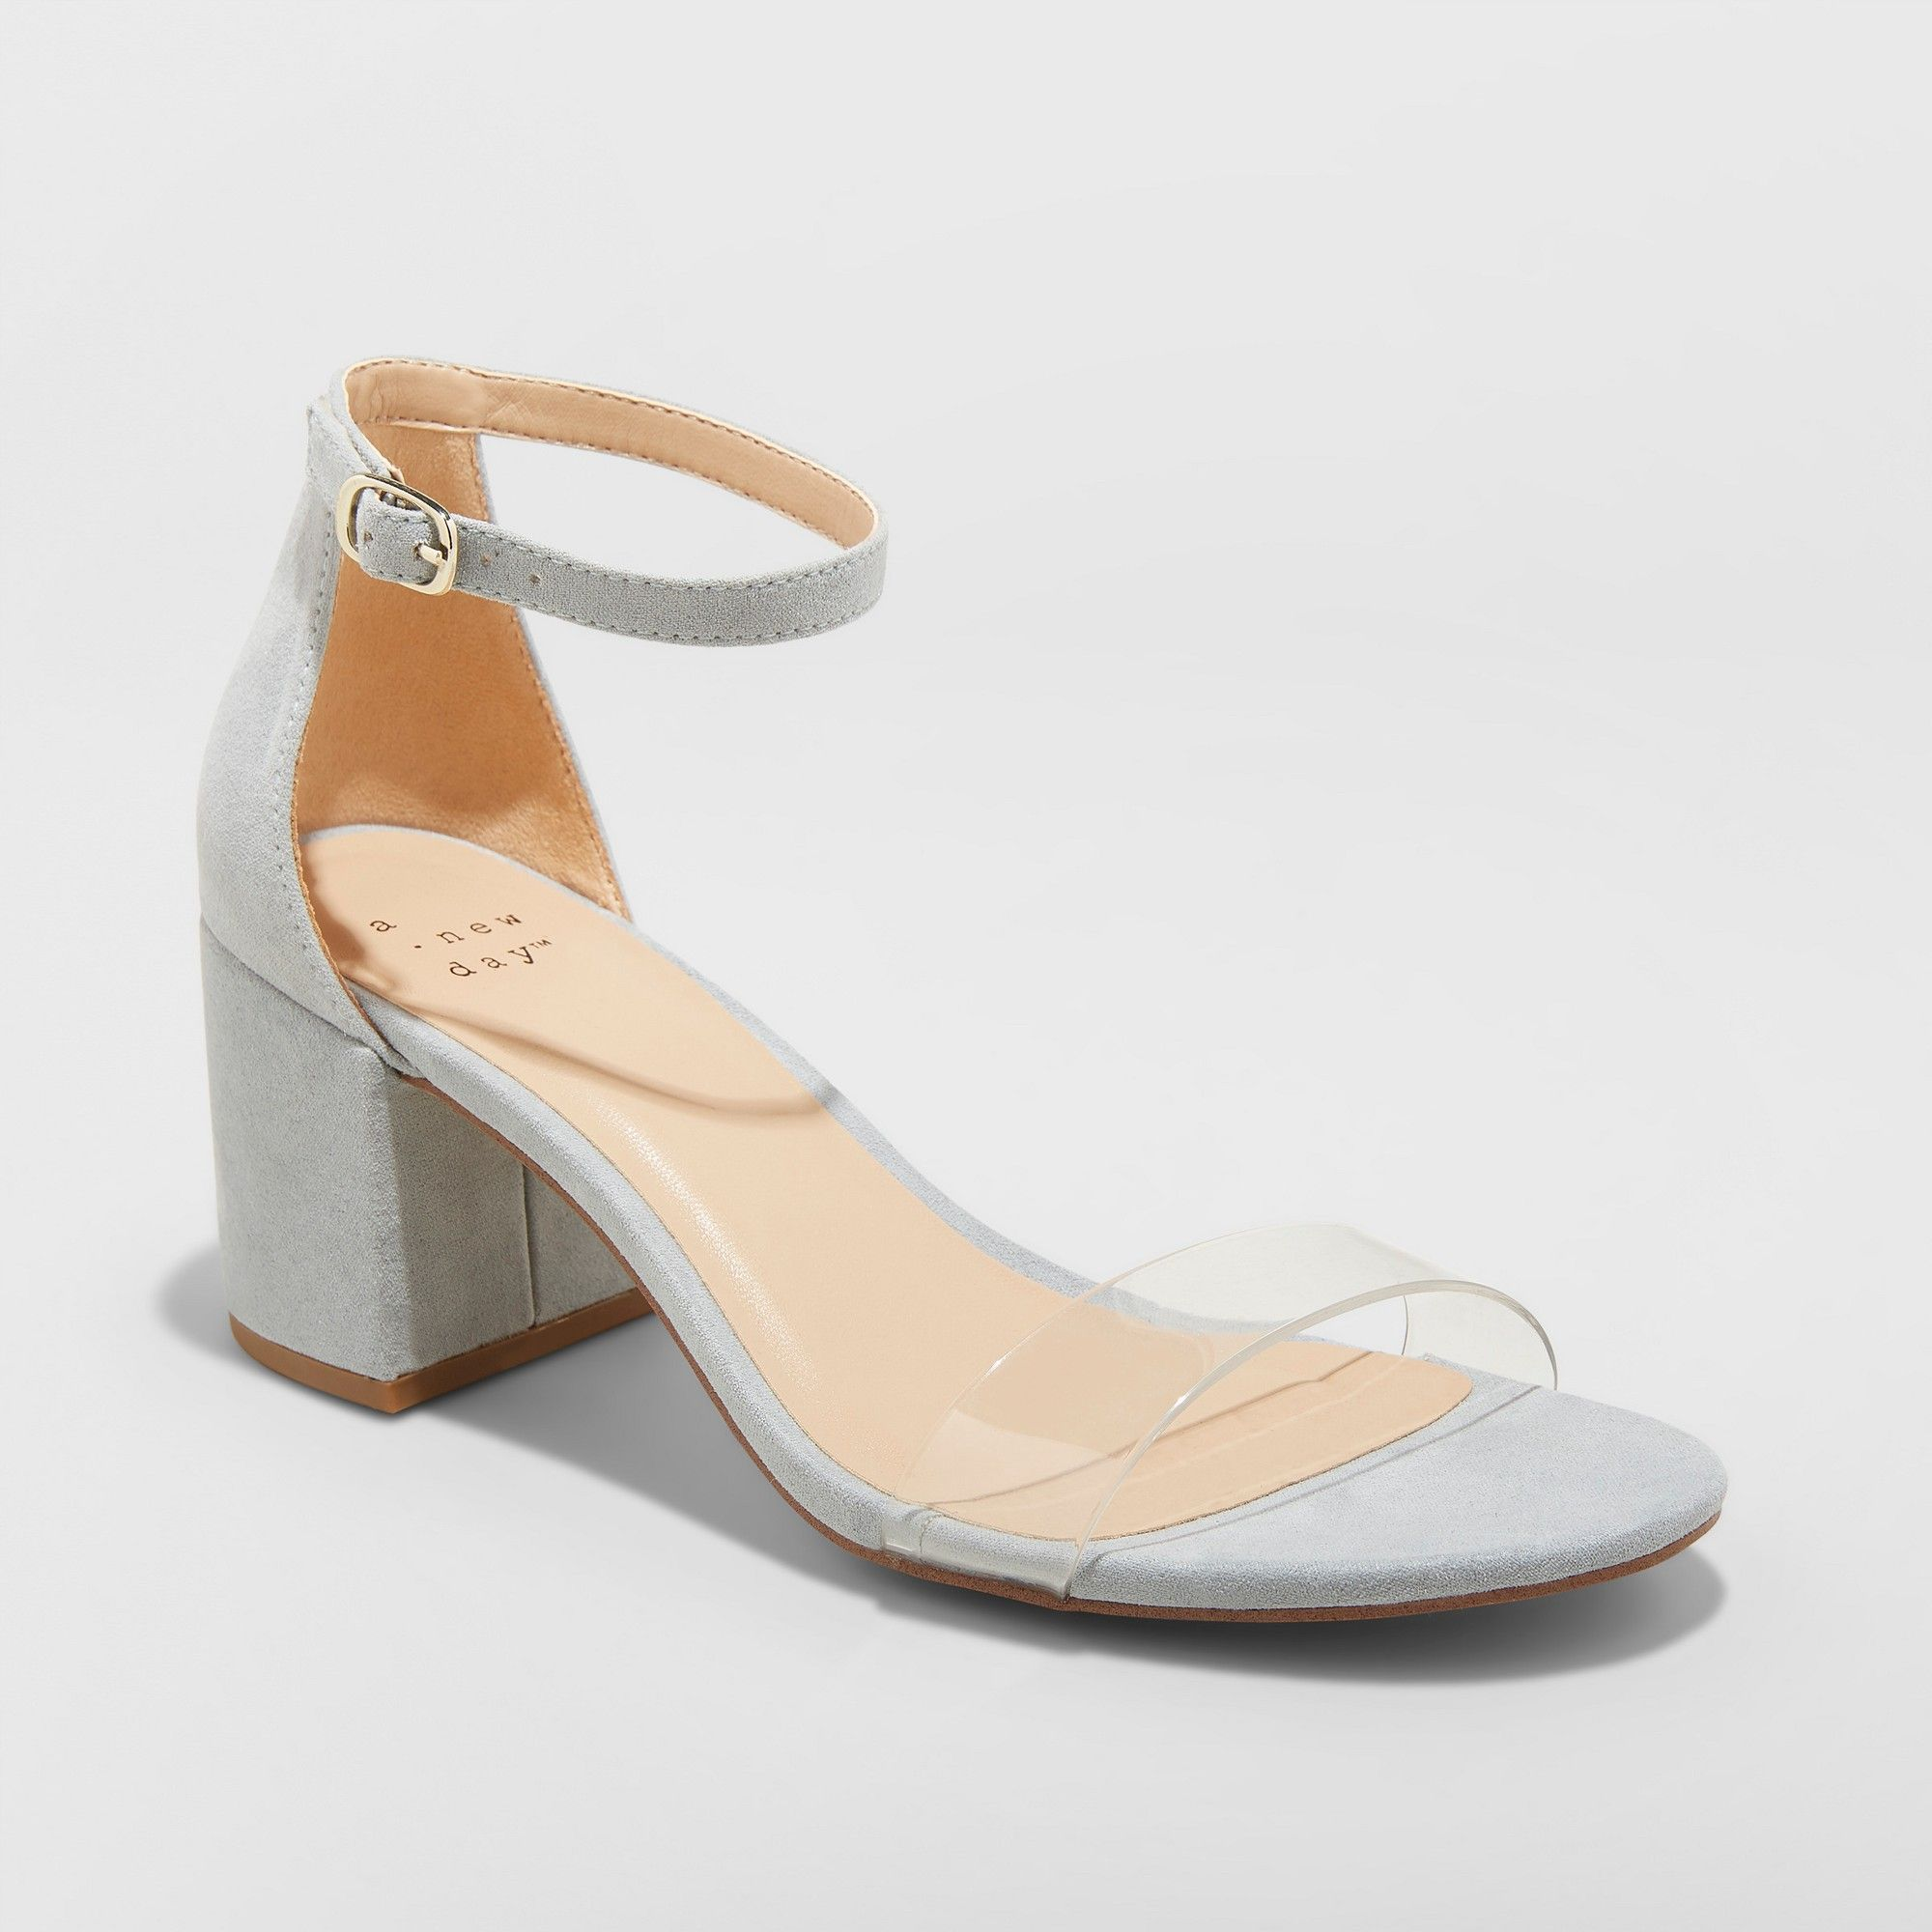 81dc90a72a Women s Michaela Lucite Mid Block Heel Pumps - A New Day Blue 6.5 in ...